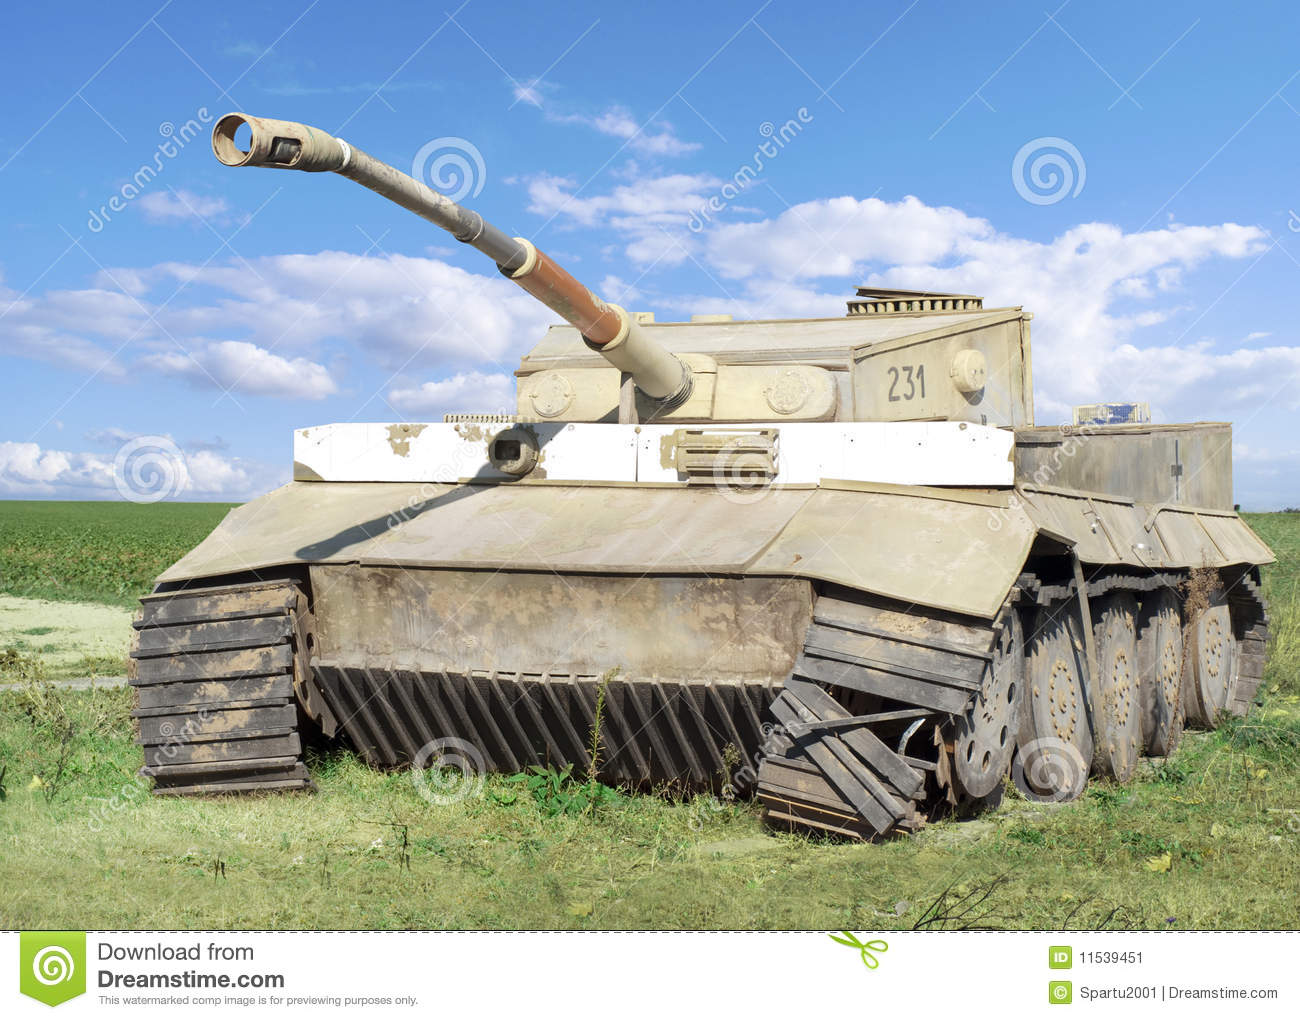 german house design architecture with Stock Image World War Ii Wrecked German Tank Image11539451 on Stock Image World War Ii Wrecked German Tank Image11539451 as well French Speaking Senior Urban Designer Oma Rotterdam  herlands also 11603 Zaha Hadid Dies At 65 additionally 7 Hallgrimskirkja Reykjavik Iceland additionally 2014 Sports Illustrated Swimsuit Models In Nothing But Body Paint.